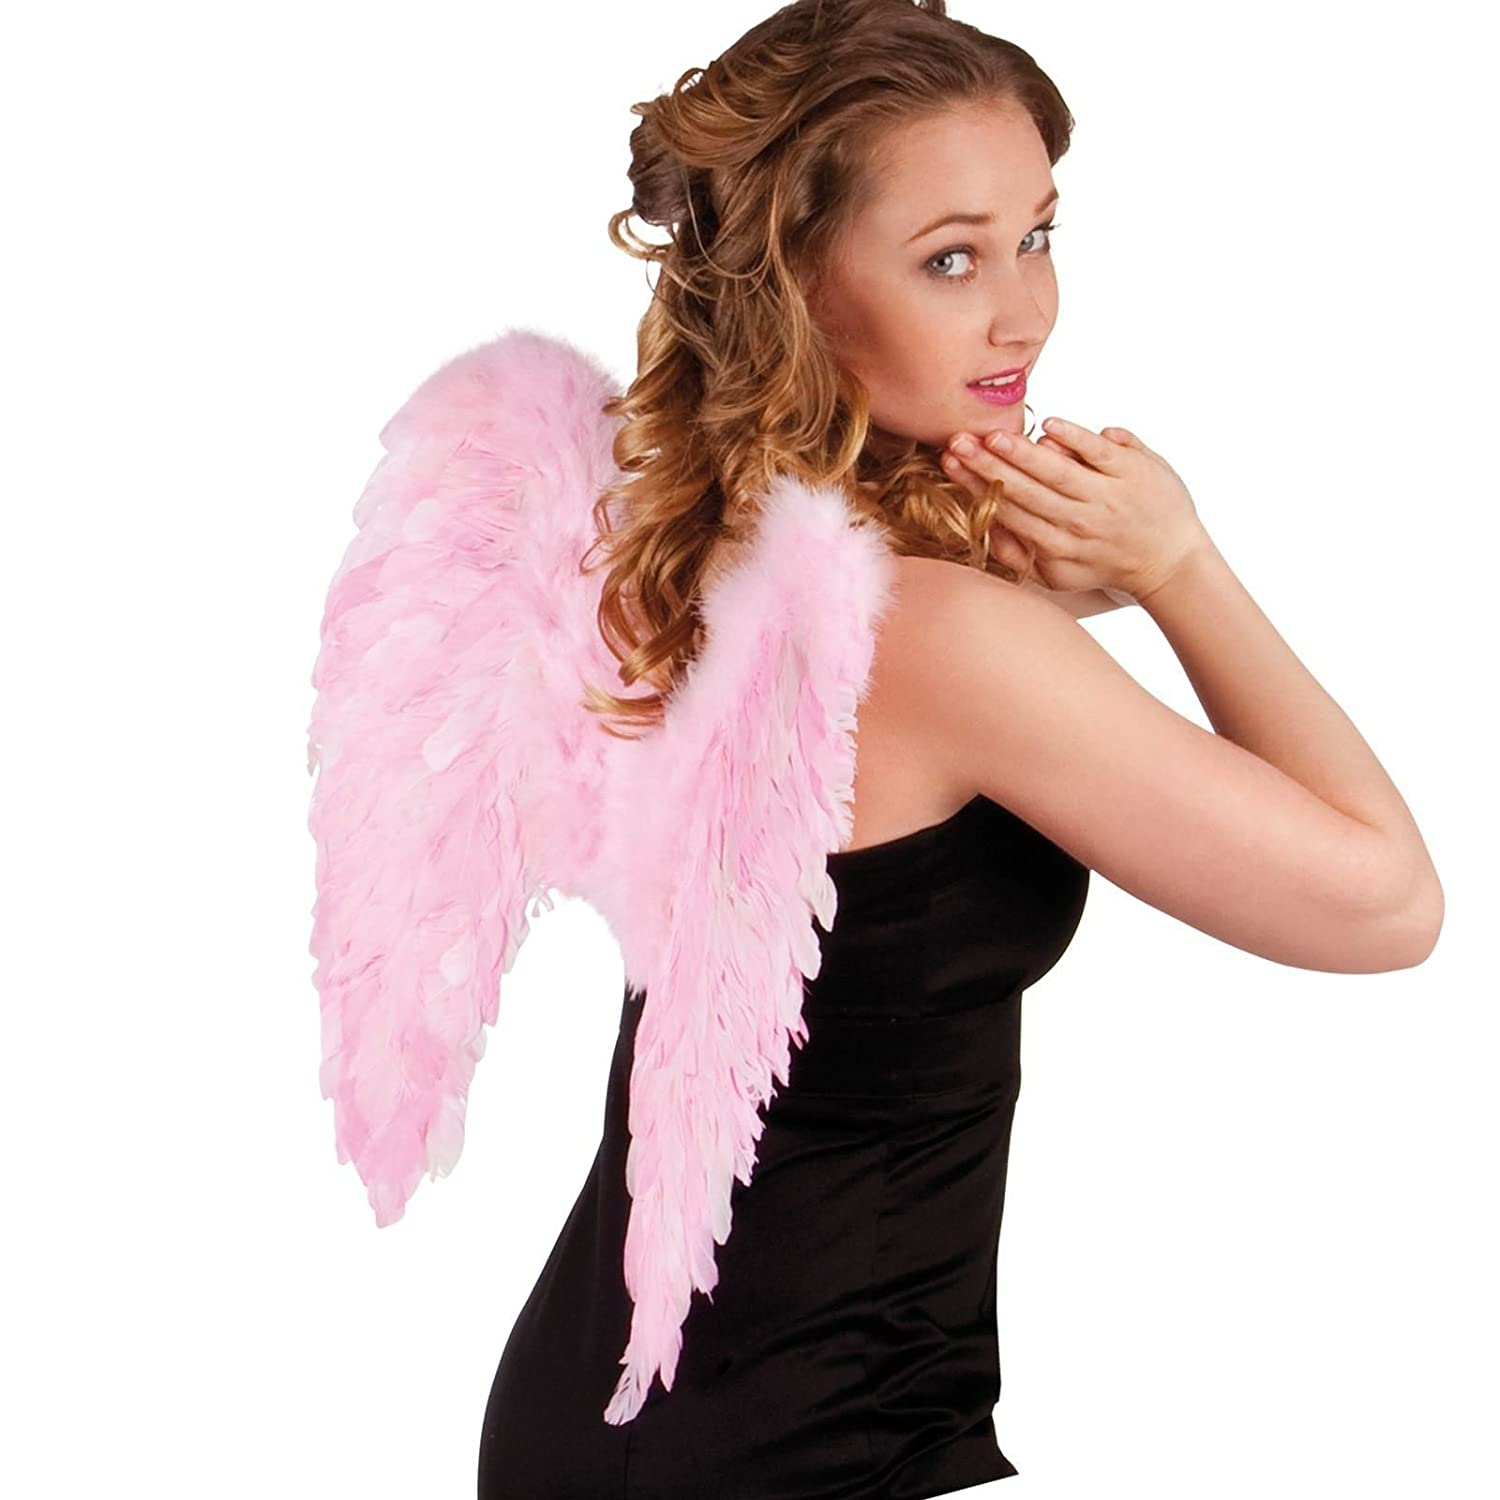 Baby Pink Feather Angel Wings folded 50 x 50cm Fancy Dress Up Girls Womens Costume Fairy Carnival Party Accessory by BOLAND BV